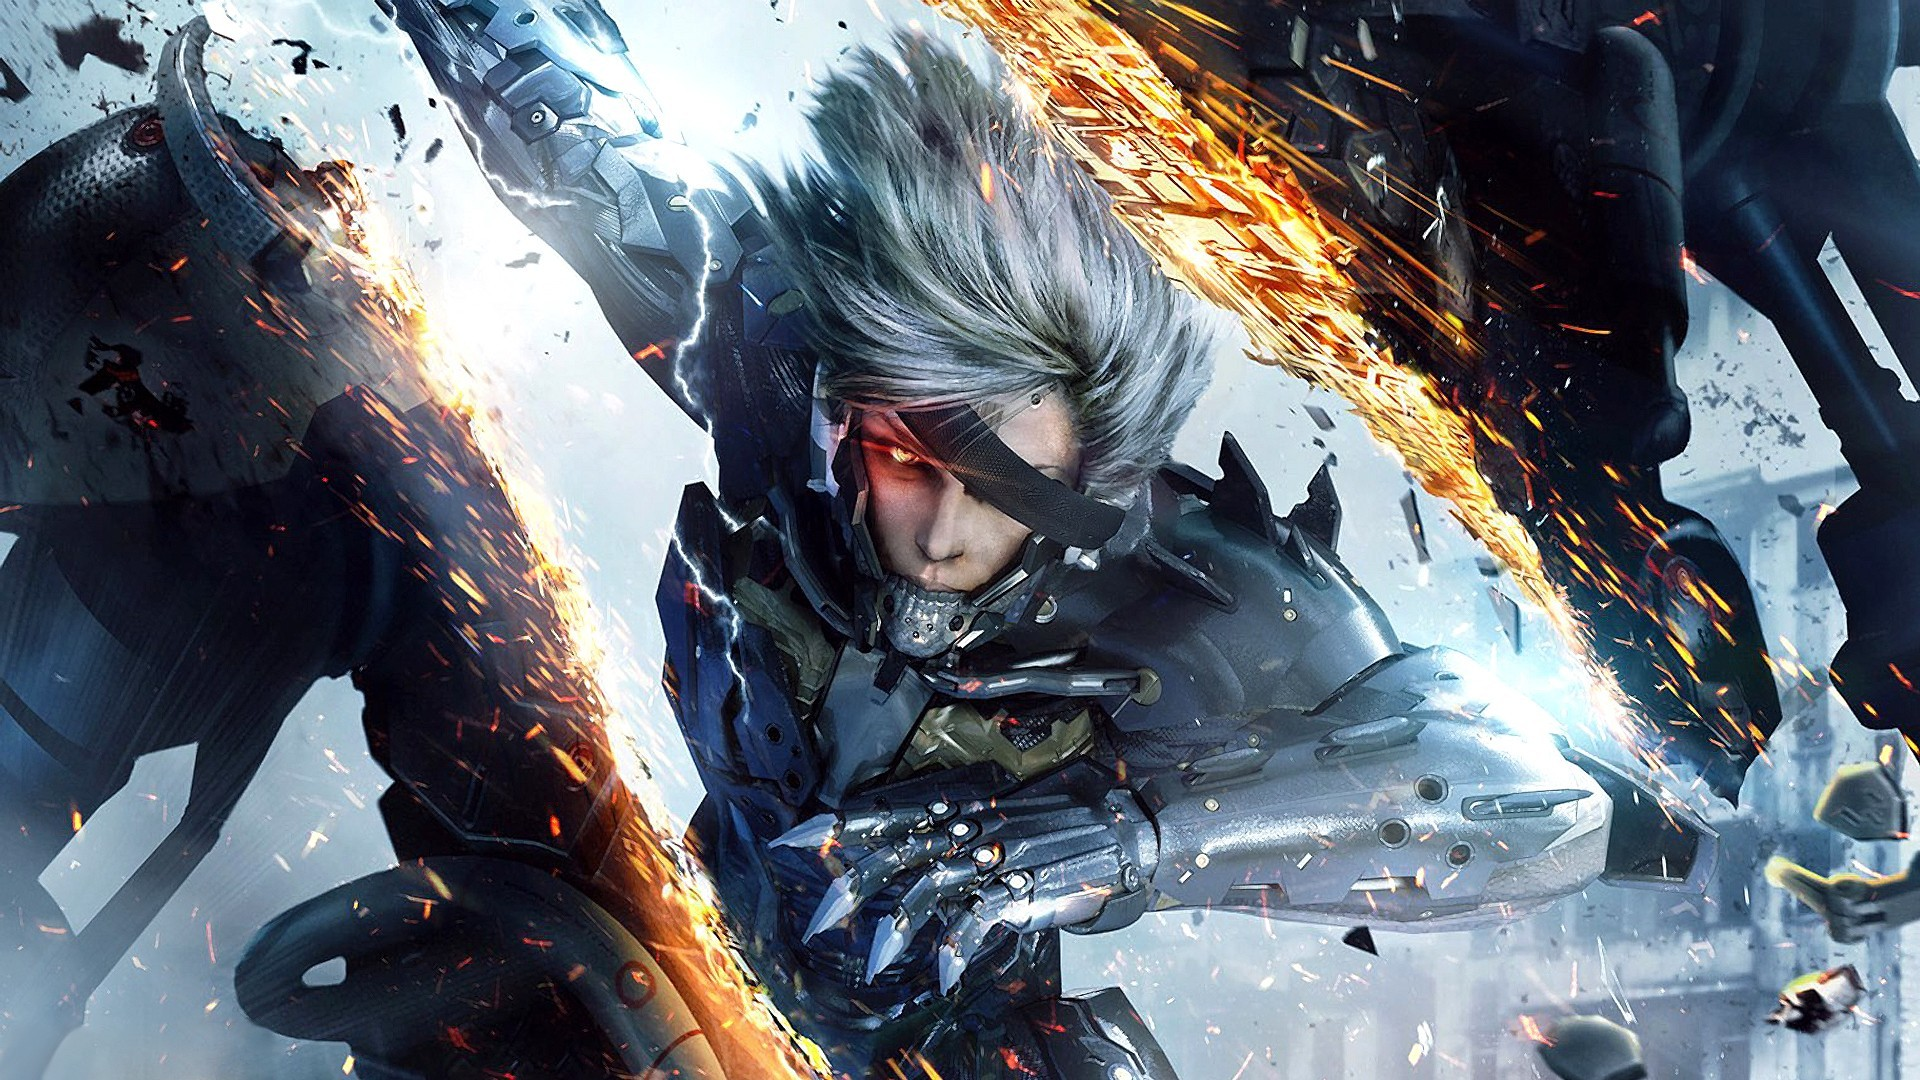 Metal Gear Solid Rising Wallpapers 77 Images